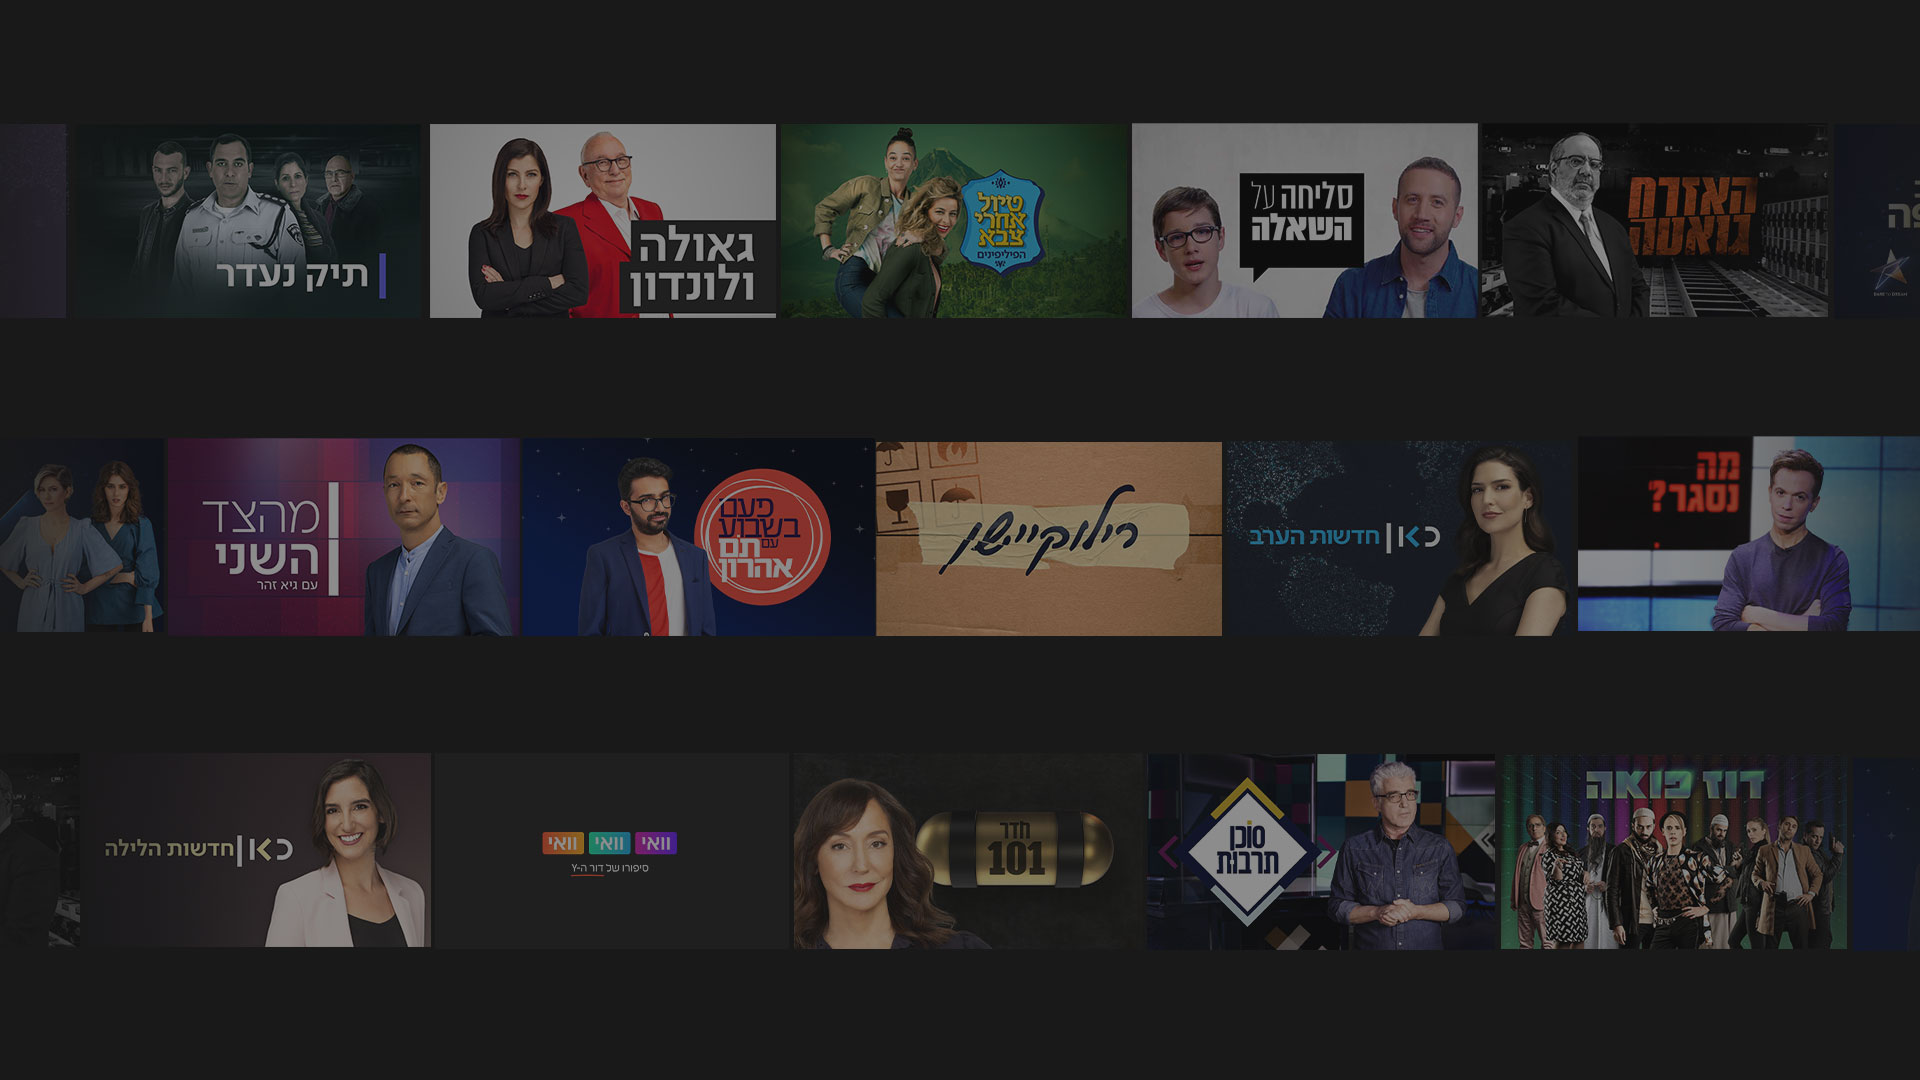 Live: Watch KAN 11 TV (Hebrew) from Israel